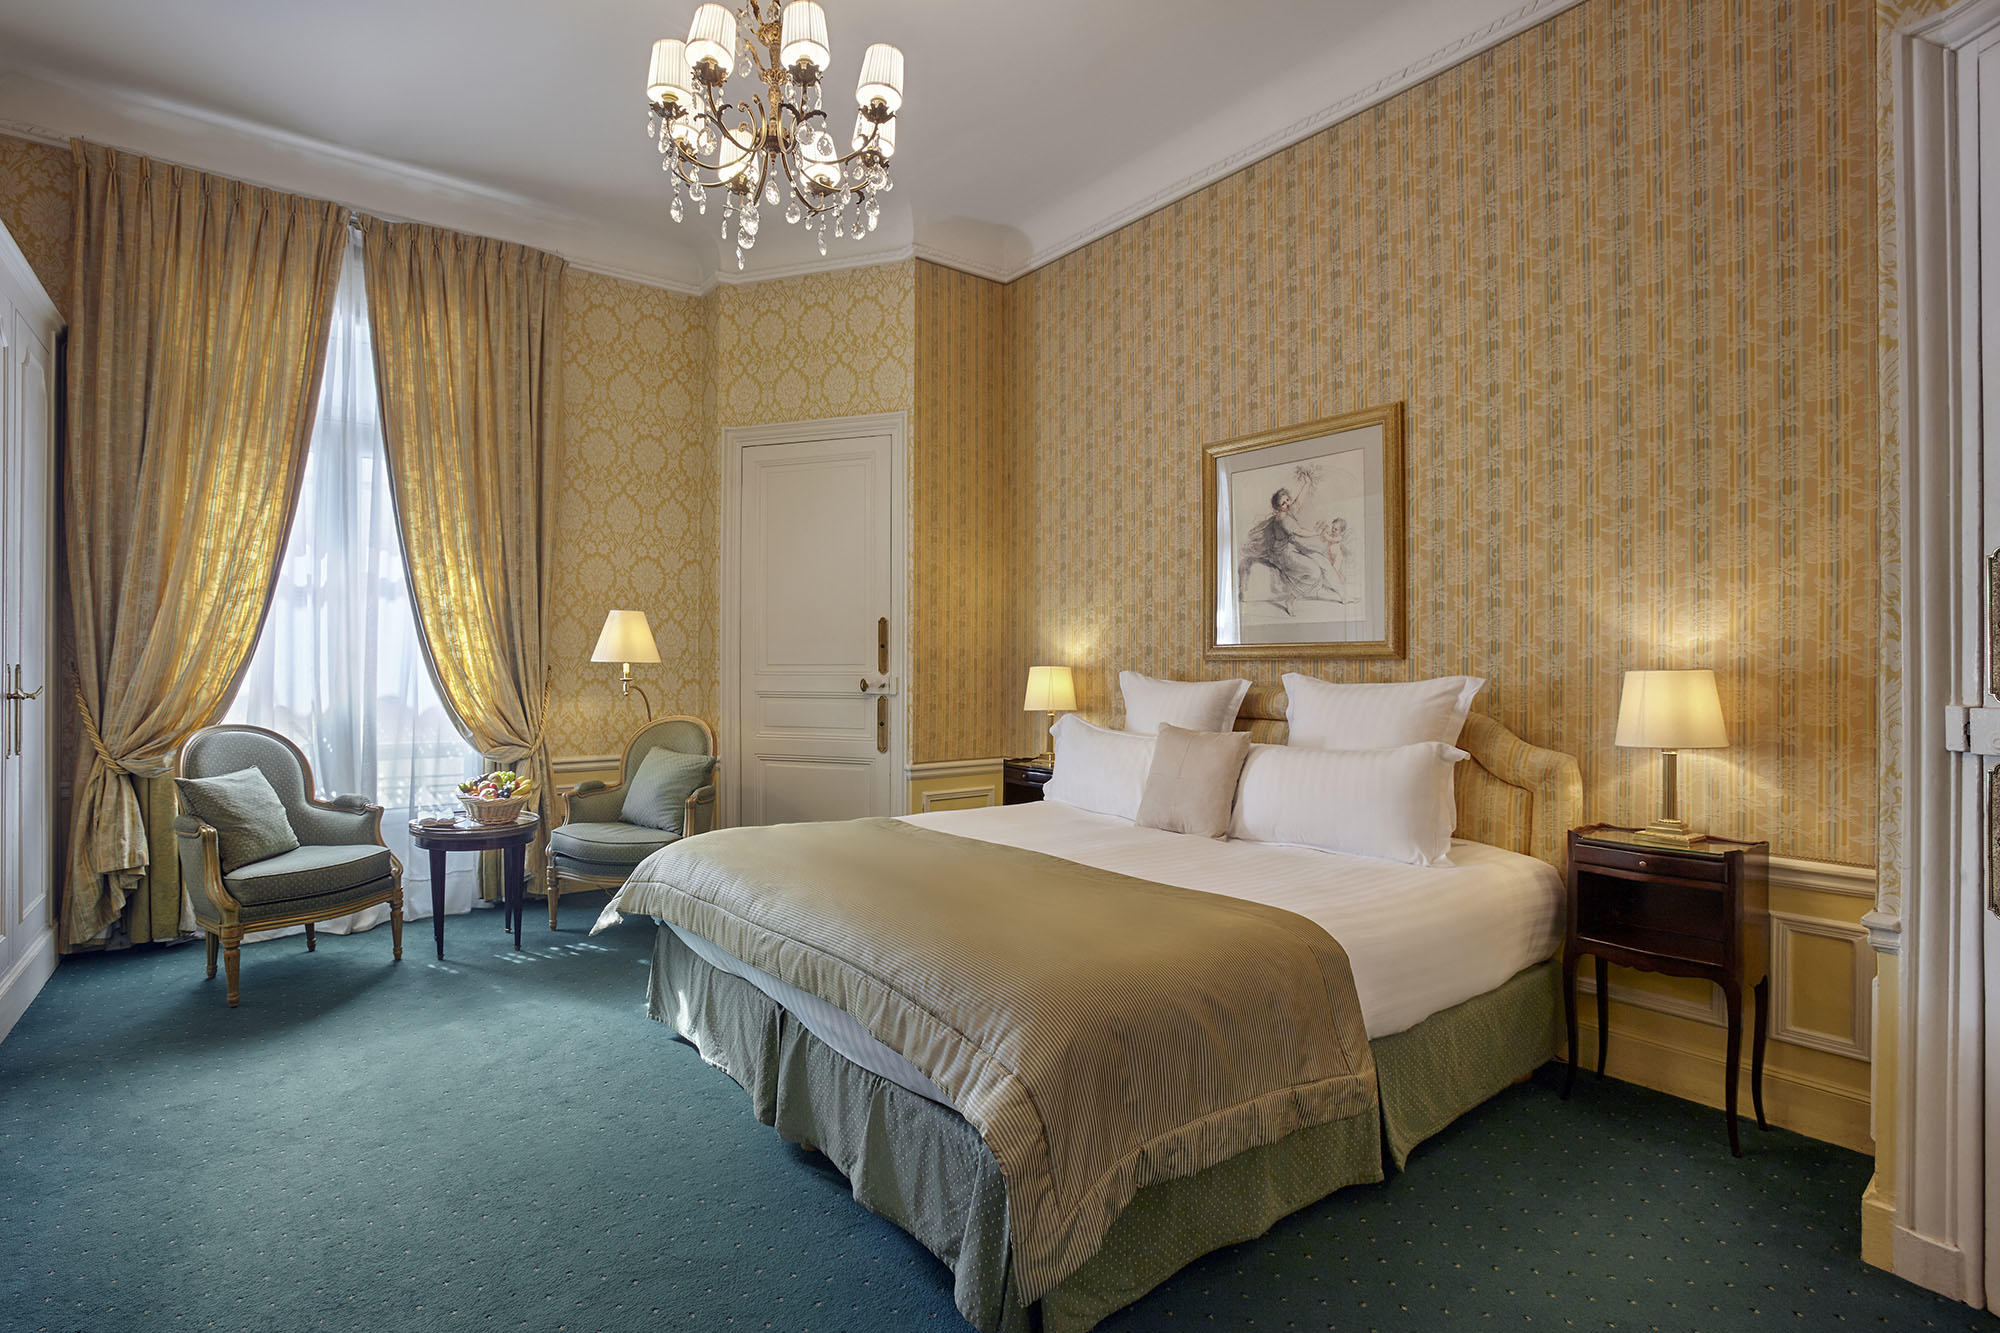 Executive Room Bedroom at Hotel Westminster Warwick Paris